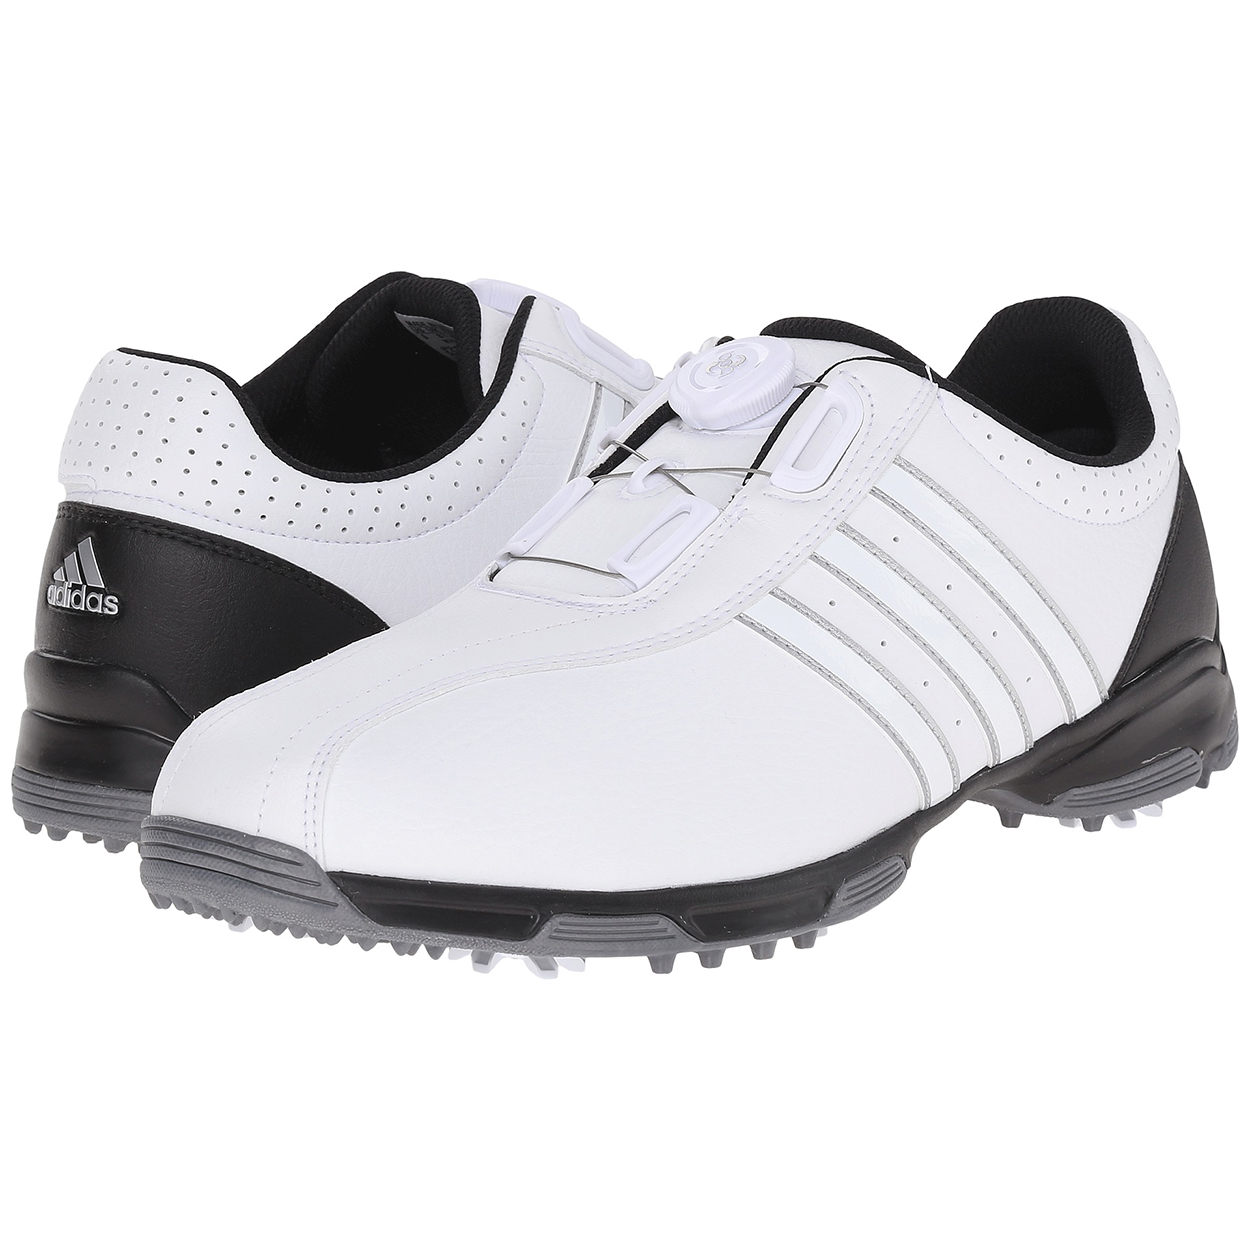 Adidas Golf Shoes Black Friday